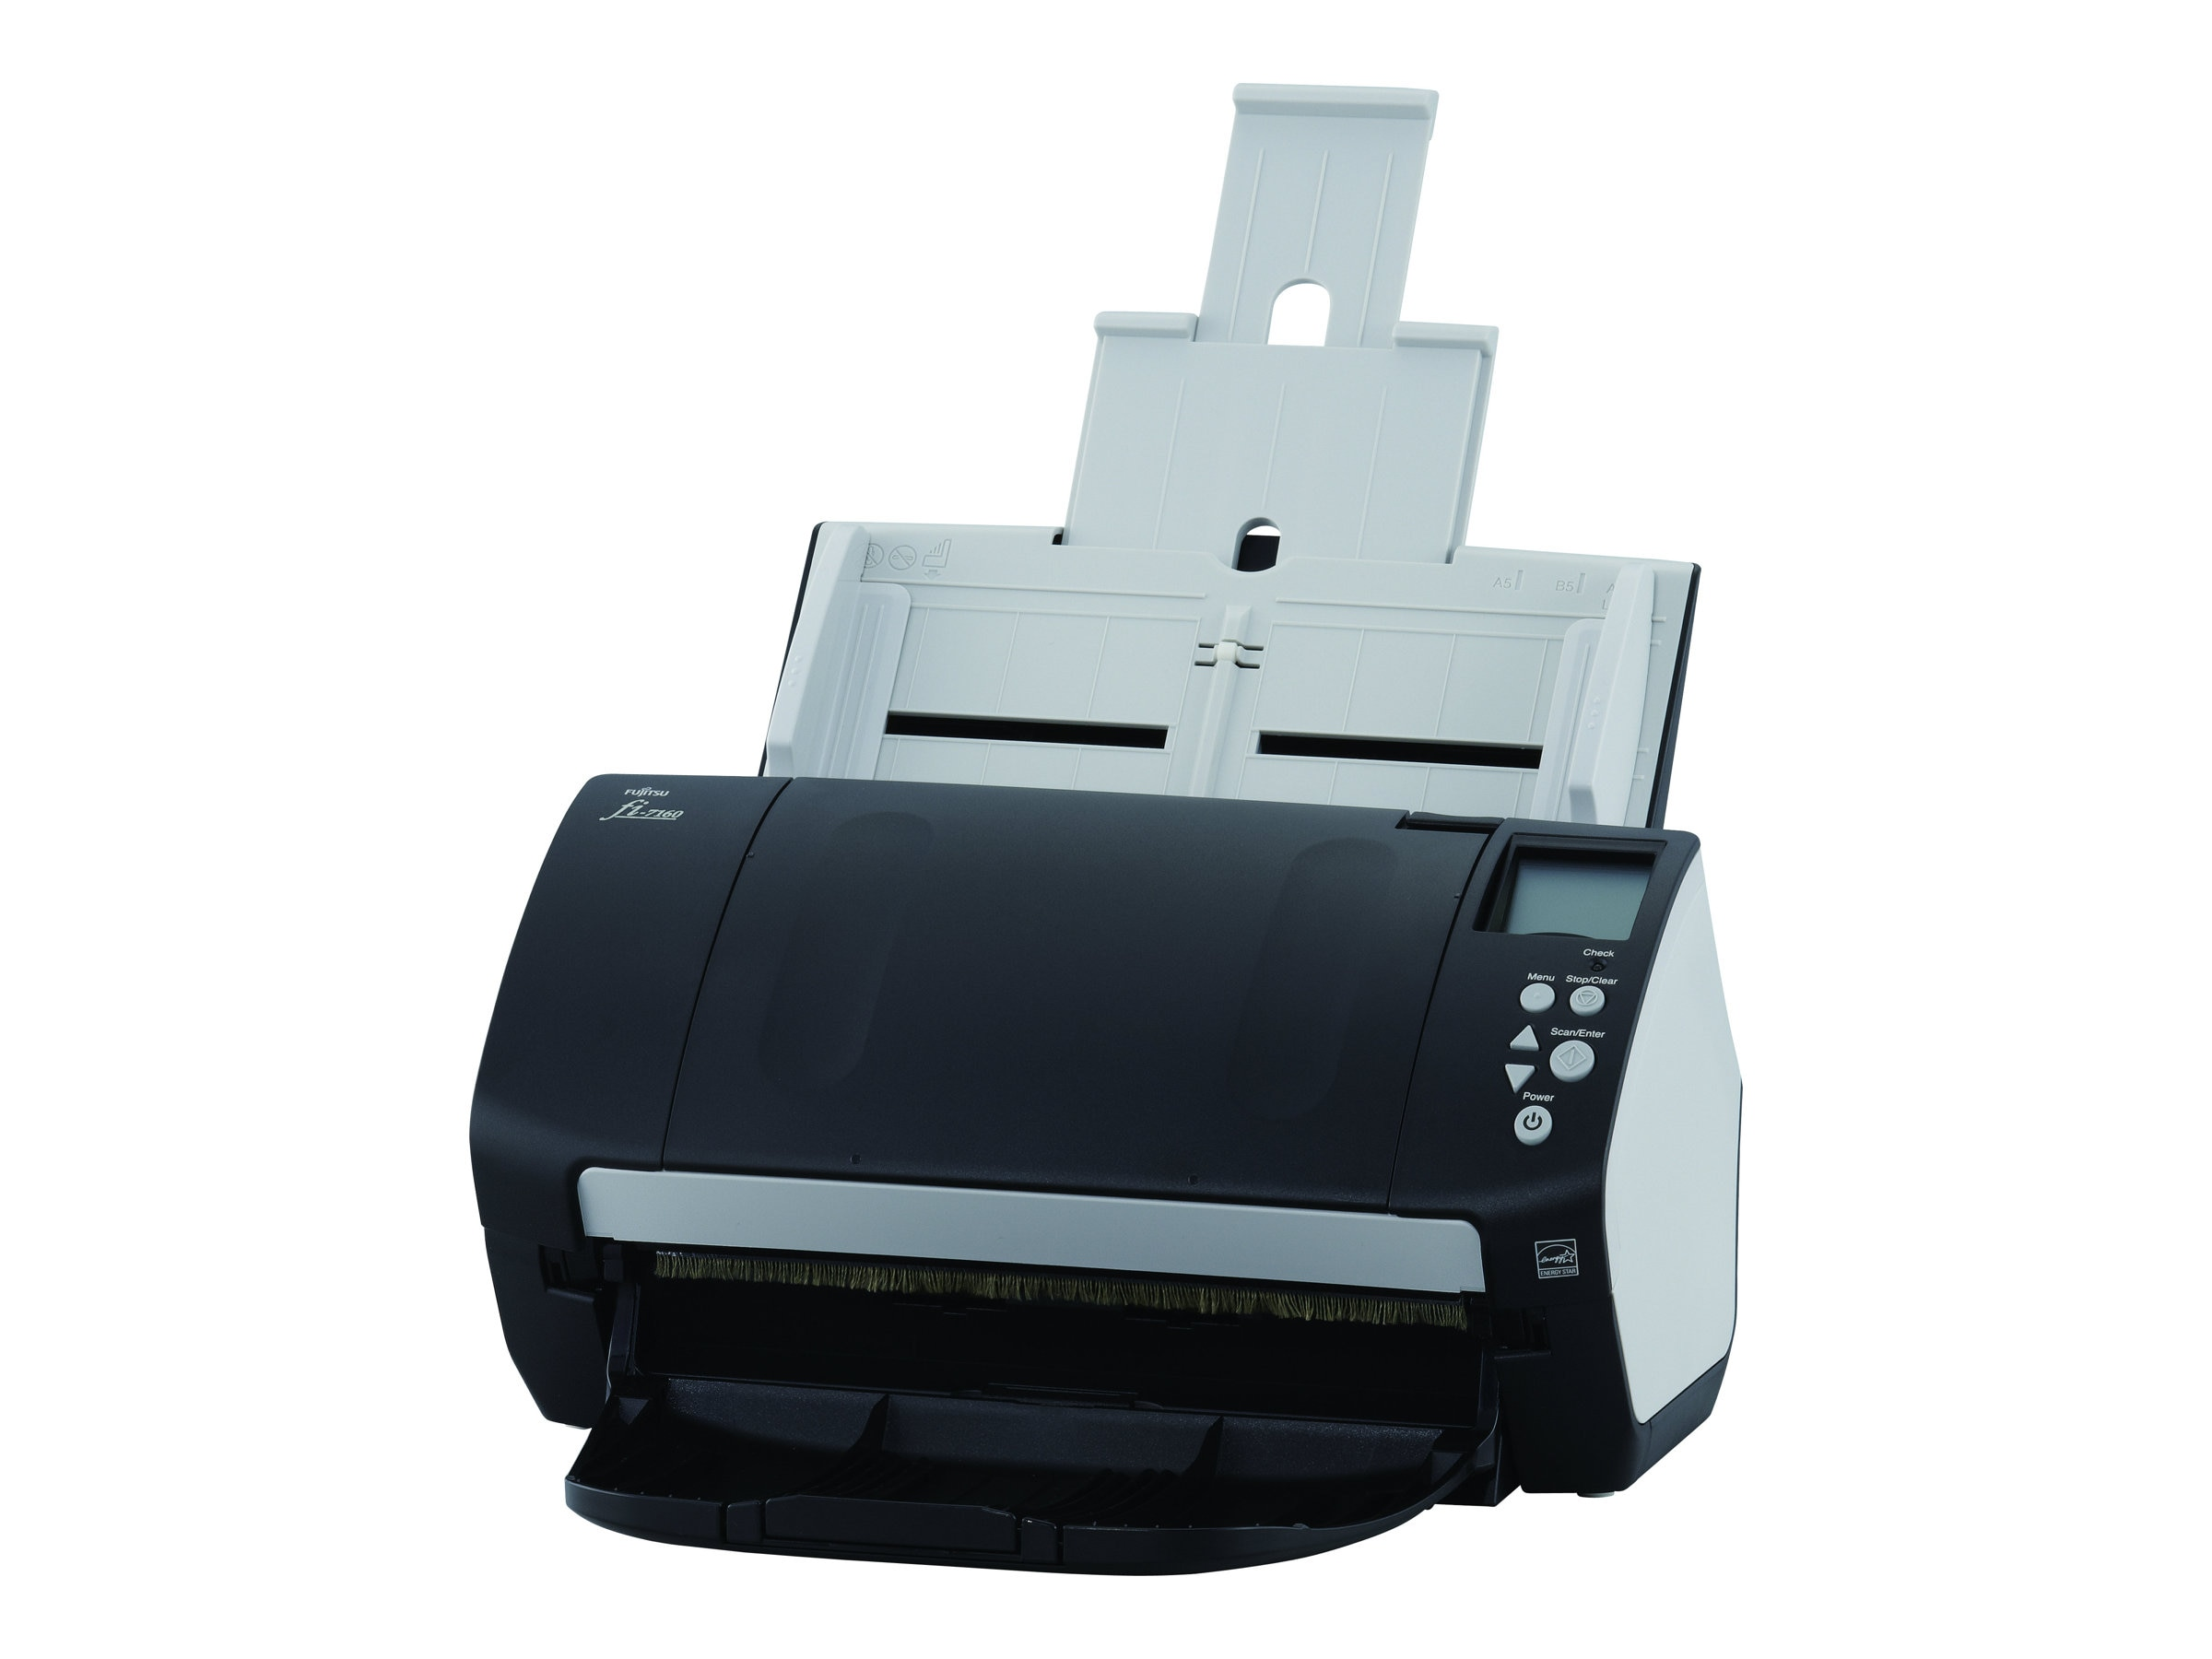 Fujitsu FI-7160 Color Duplex Sheetfed Scanner (replaces fi-6130z)